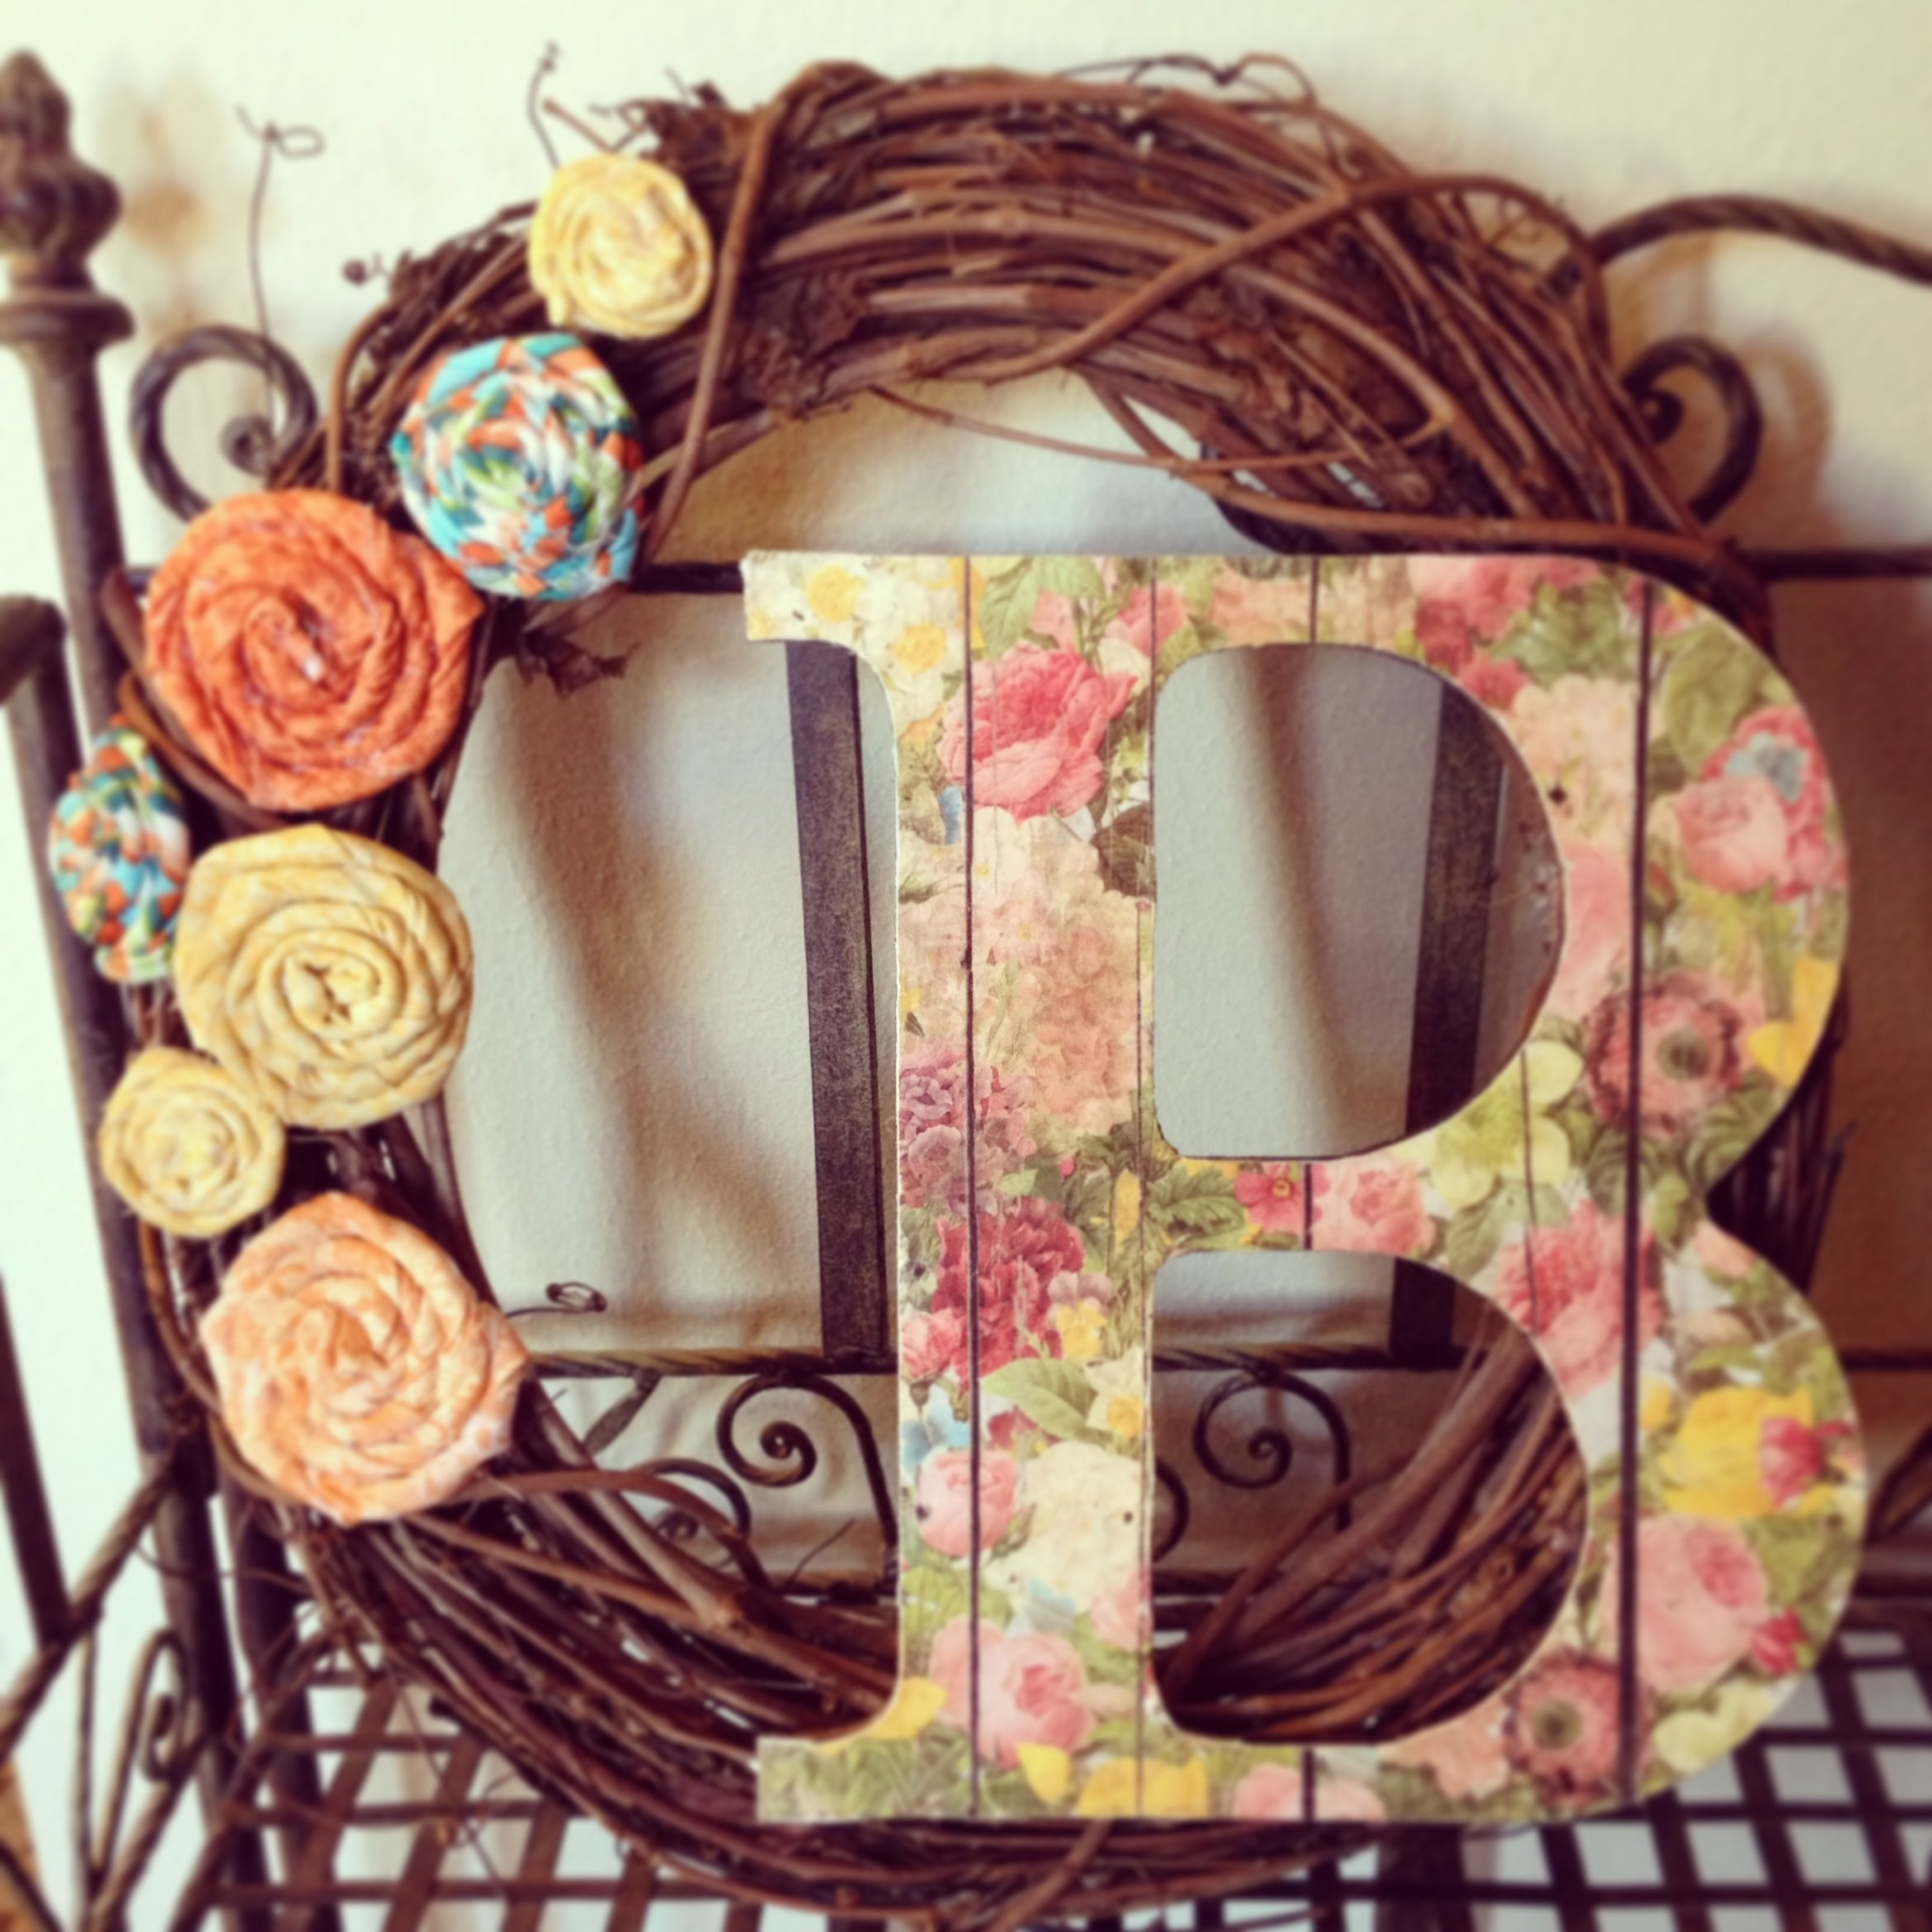 How to glue scrapbook paper to wood letters - Spring Wreath Grapevine Wreath Unfinished Wood Letter Covered By Scrapbook Paper Rosettes